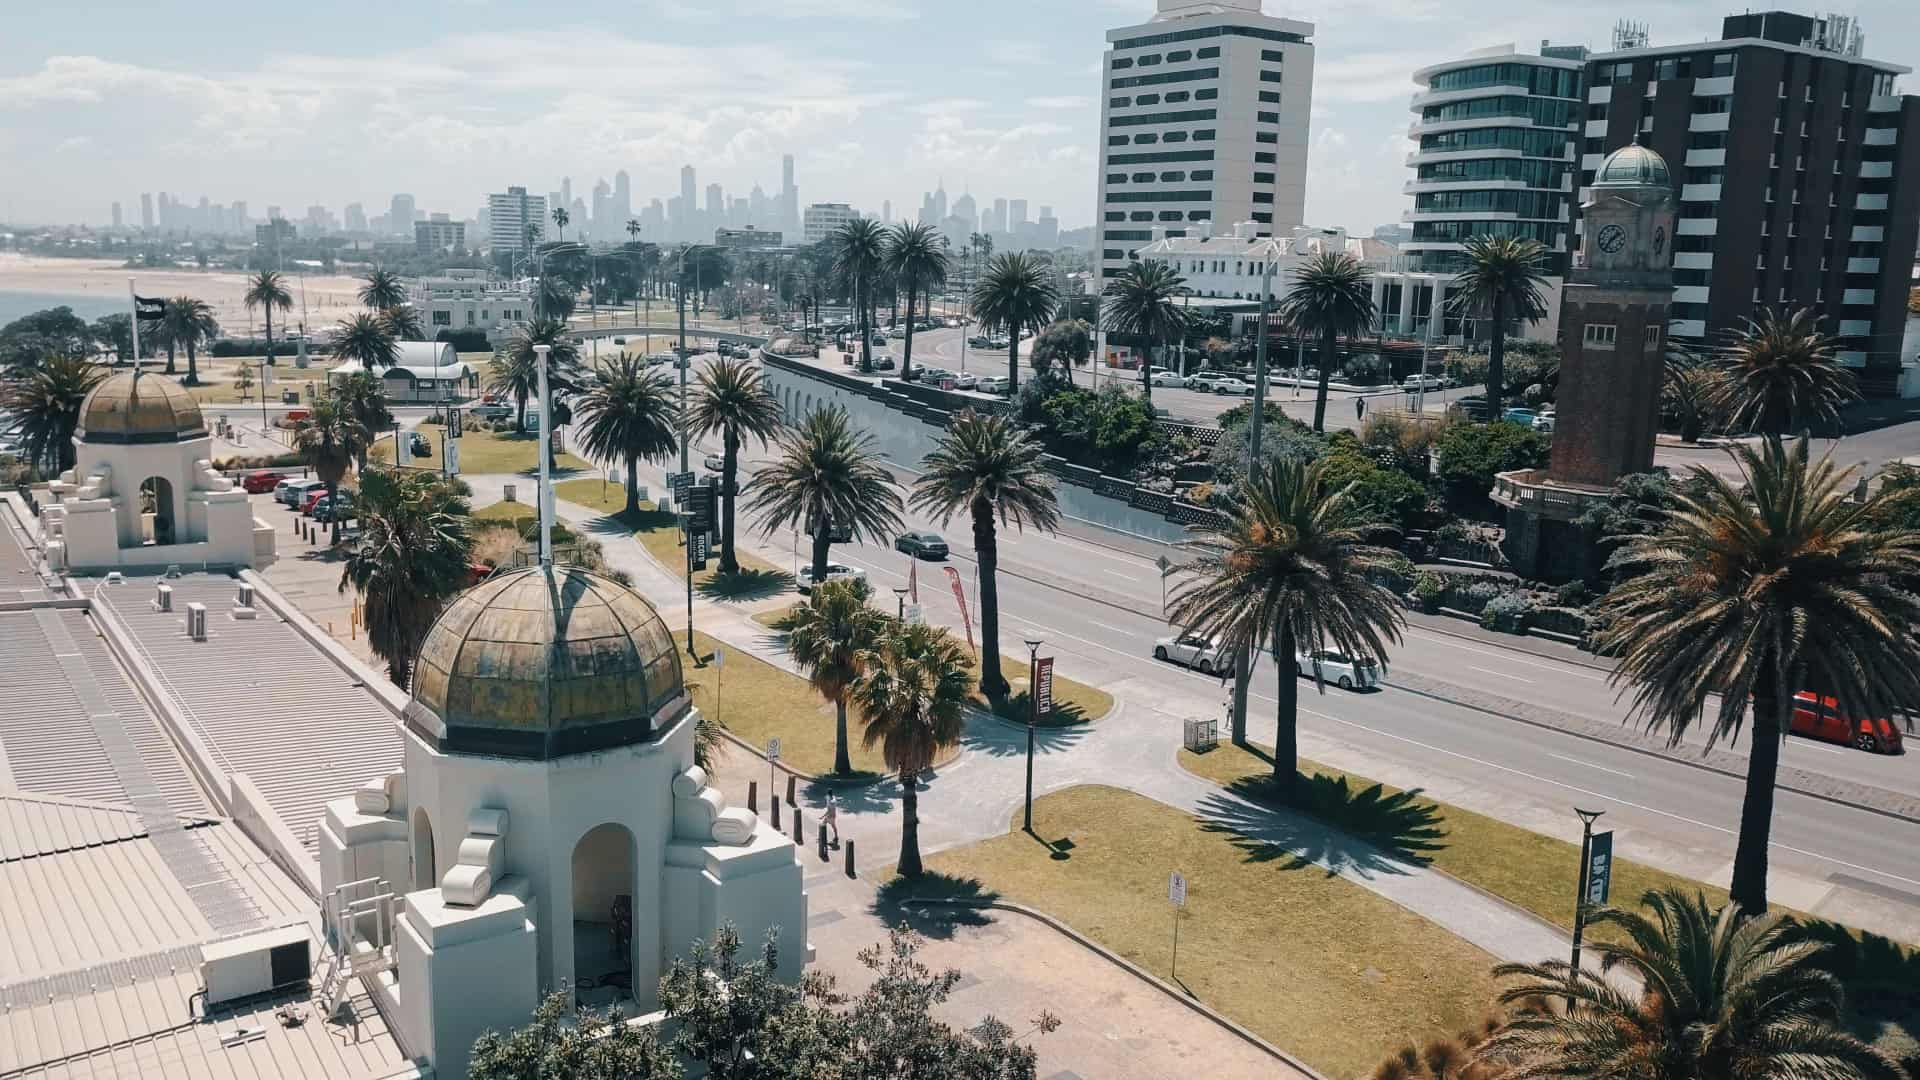 St-Kilda-Melbourne-City-Backdrop-Drone-Shot-Welcome-To-Travel